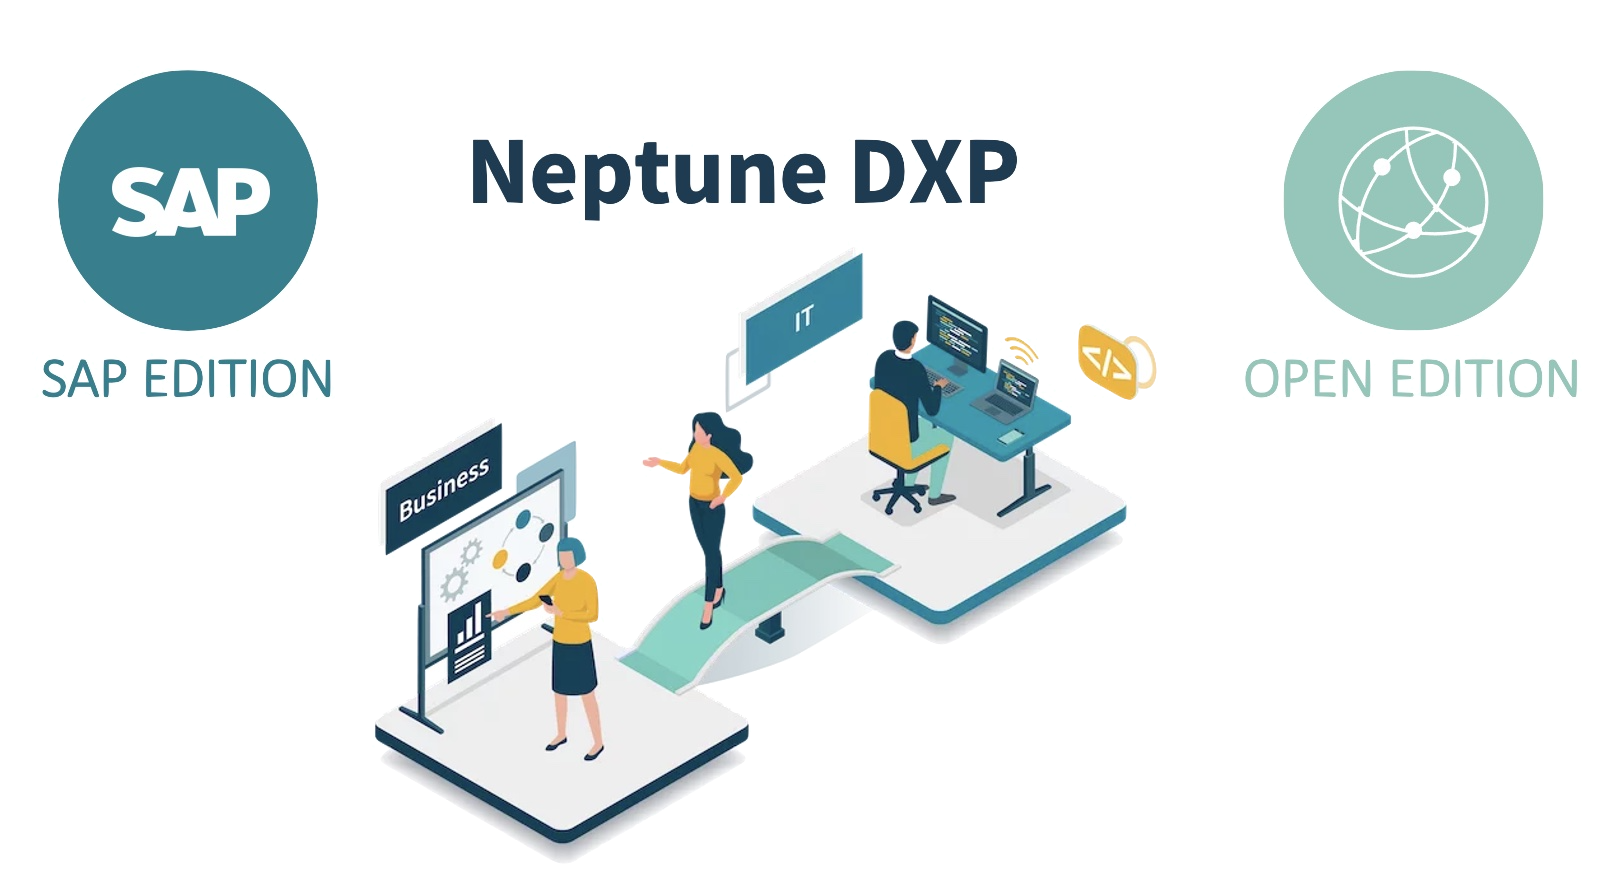 Learn how to succeed with the Neptune DX Platform